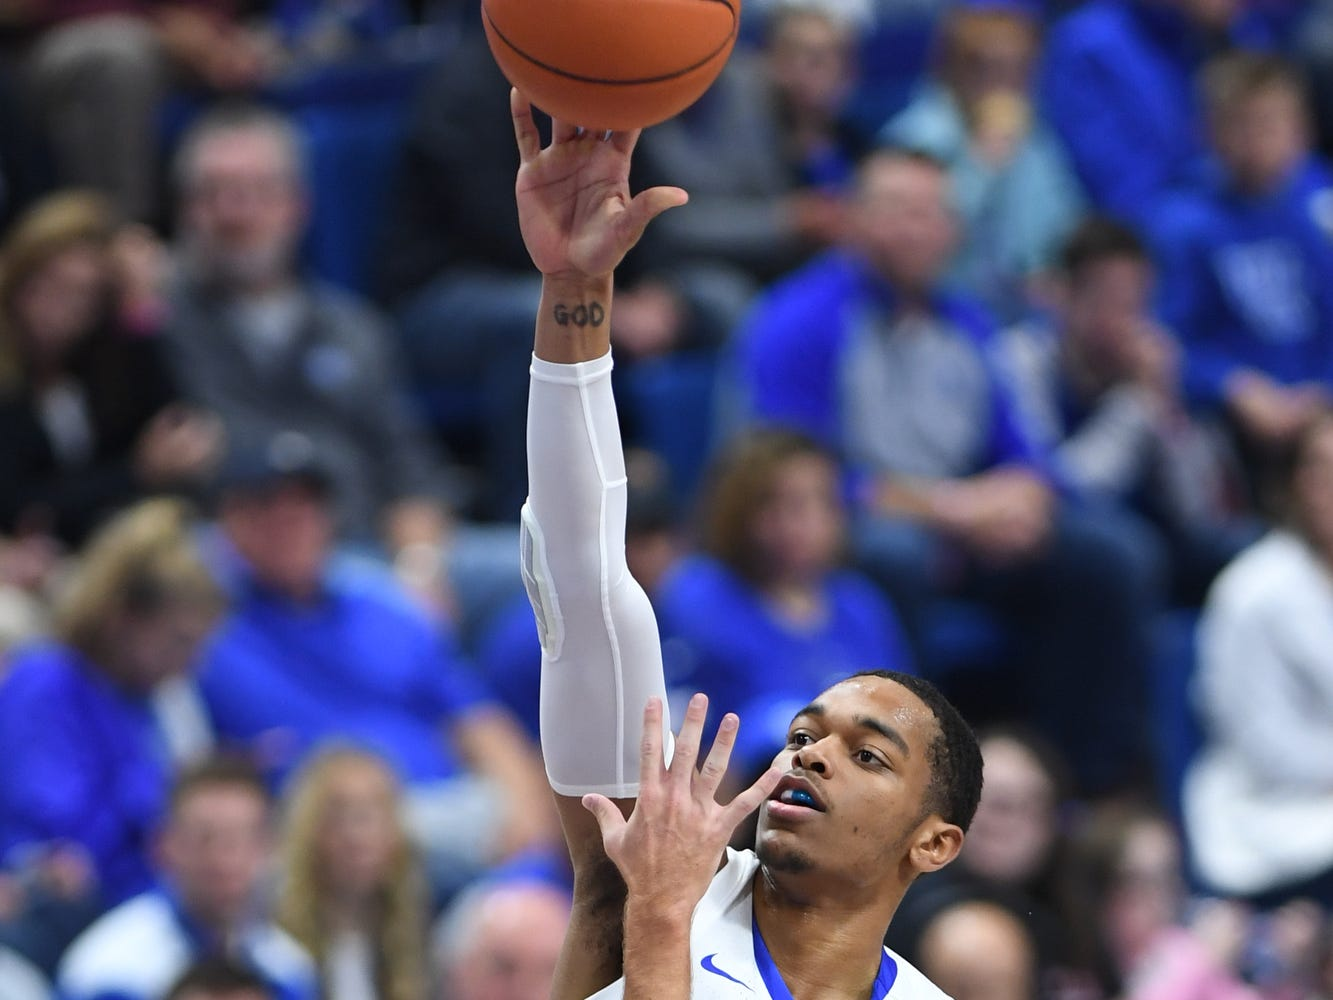 PJ Washington shoots the ball during the University of Kentucky basketball game against Transylvania at Rupp Arena in Lexington on Friday, Oct. 26, 2018.